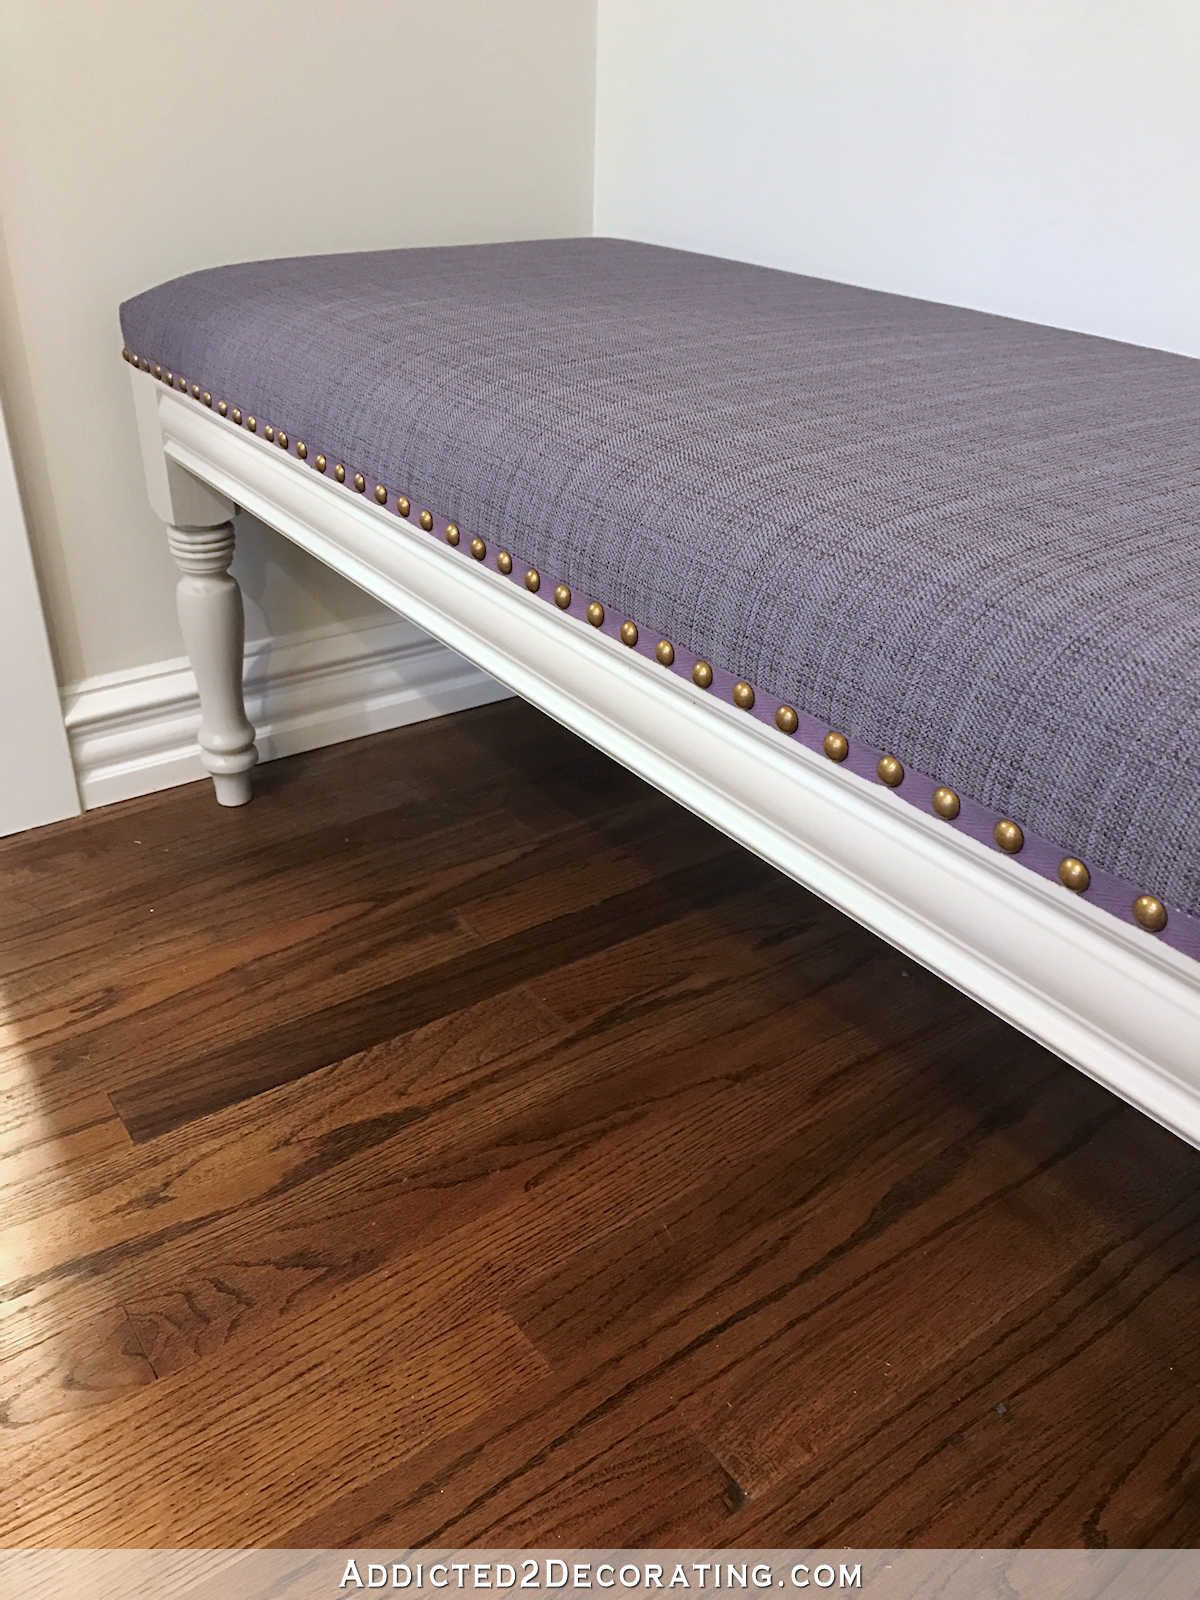 Diy Upholstered Dining Room Bench Finished How To Upholster The Seat Addicted 2 Decorating Dining Room Bench Upholstered Bench Seat Upholstered Bench Diy